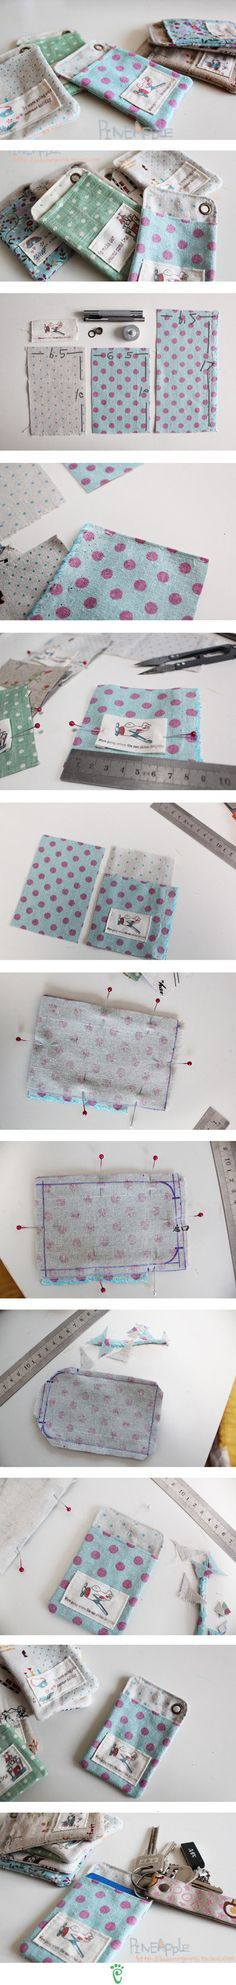 Great project idea. Maybe add a flap/strap to keep the item -- phone / ipod from falling out of the pouch.